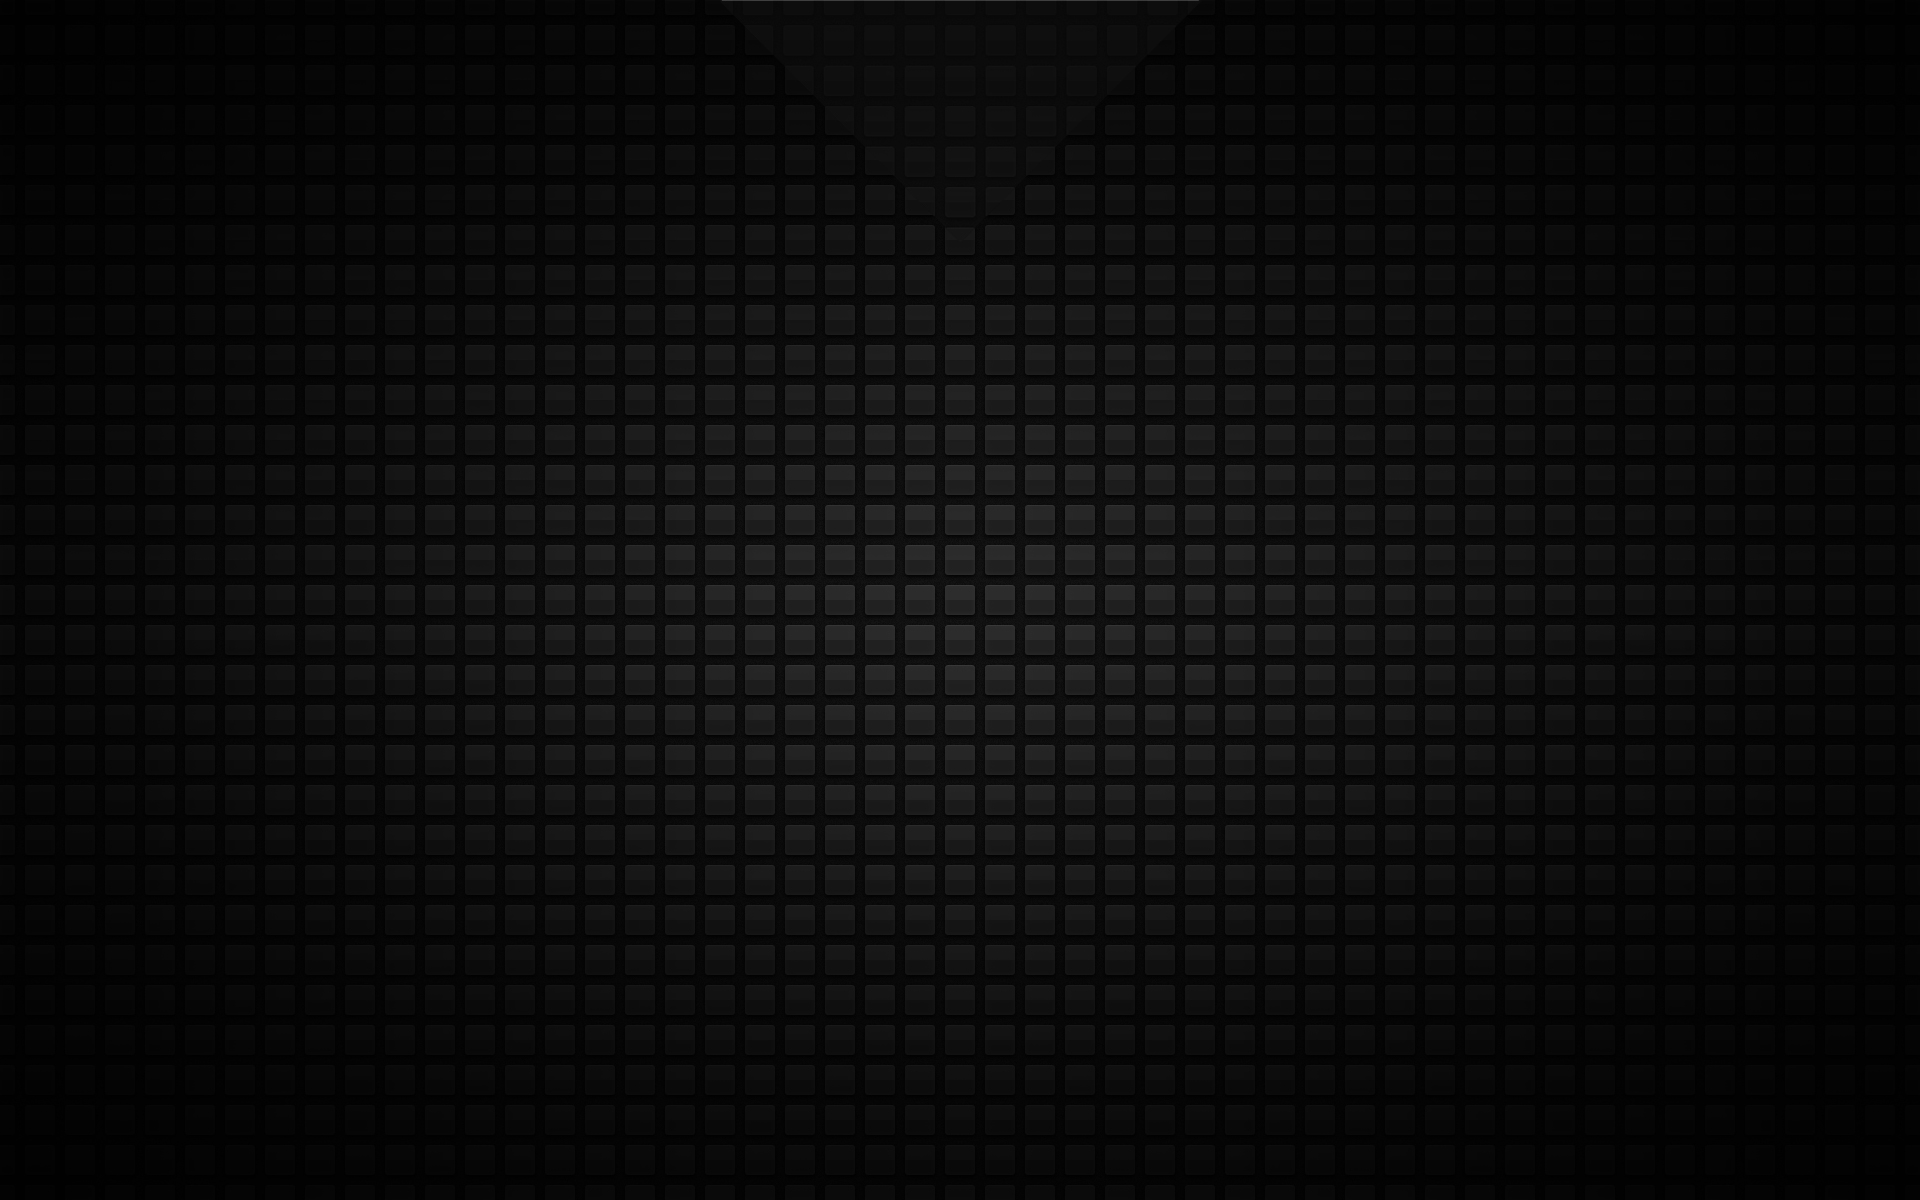 Black Wallpaper High Resolution 11 Thumb